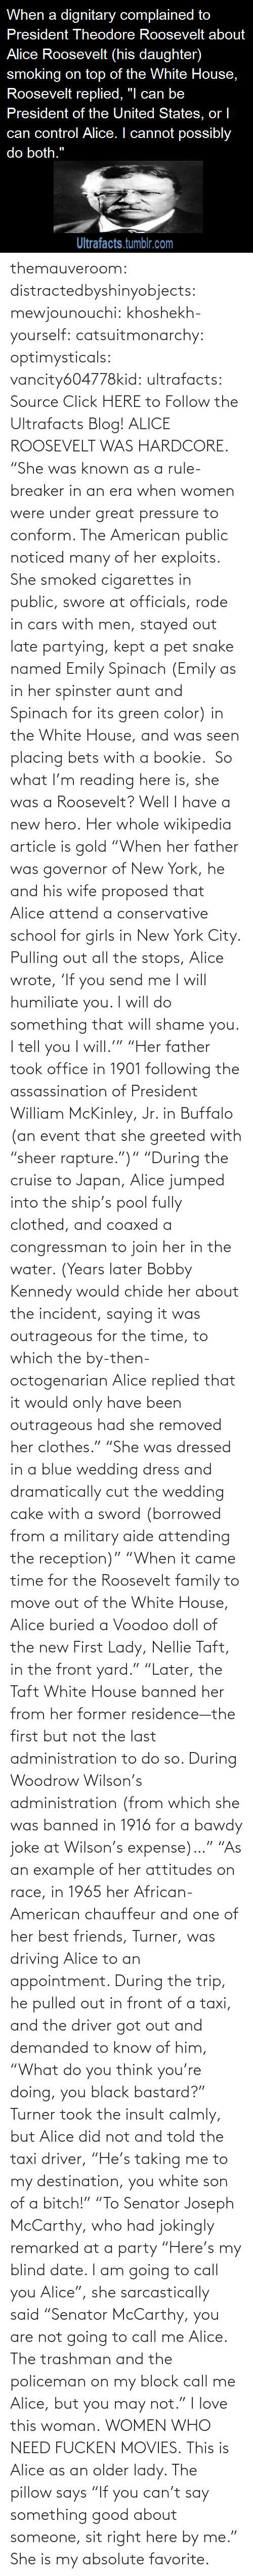 "yard: themauveroom: distractedbyshinyobjects:  mewjounouchi:  khoshekh-yourself:  catsuitmonarchy:  optimysticals:  vancity604778kid:  ultrafacts:     Source Click HERE to Follow the Ultrafacts Blog!     ALICE ROOSEVELT WAS HARDCORE. ""She was known as a rule-breaker in an era when women were under great pressure to conform. The American public noticed many of her exploits. She smoked cigarettes in public, swore at officials, rode in cars with men, stayed out late partying, kept a pet snake named Emily Spinach (Emily as in her spinster aunt and Spinach for its green color) in the White House, and was seen placing bets with a bookie.    So what I'm reading here is, she was a Roosevelt?  Well I have a new hero.  Her whole wikipedia article is gold ""When her father was governor of New York, he and his wife proposed that Alice attend a conservative school for girls in New York City. Pulling out all the stops, Alice wrote, 'If you send me I will humiliate you. I will do something that will shame you. I tell you I will.'"" ""Her father took office in 1901 following the assassination of President William McKinley, Jr. in Buffalo (an event that she greeted with ""sheer rapture."")"" ""During the cruise to Japan, Alice jumped into the ship's pool fully clothed, and coaxed a congressman to join her in the water. (Years later Bobby Kennedy would chide her about the incident, saying it was outrageous for the time, to which the by-then-octogenarian Alice replied that it would only have been outrageous had she removed her clothes."" ""She was dressed in a blue wedding dress and dramatically cut the wedding cake with a sword (borrowed from a military aide attending the reception)"" ""When it came time for the Roosevelt family to move out of the White House, Alice buried a Voodoo doll of the new First Lady, Nellie Taft, in the front yard."" ""Later, the Taft White House banned her from her former residence—the first but not the last administration to do so. During Woodrow Wilson's administration (from which she was banned in 1916 for a bawdy joke at Wilson's expense)…"" ""As an example of her attitudes on race, in 1965 her African-American chauffeur and one of her best friends, Turner, was driving Alice to an appointment. During the trip, he pulled out in front of a taxi, and the driver got out and demanded to know of him, ""What do you think you're doing, you black bastard?"" Turner took the insult calmly, but Alice did not and told the taxi driver, ""He's taking me to my destination, you white son of a bitch!"" ""To Senator Joseph McCarthy, who had jokingly remarked at a party ""Here's my blind date. I am going to call you Alice"", she sarcastically said ""Senator McCarthy, you are not going to call me Alice. The trashman and the policeman on my block call me Alice, but you may not.""  I love this woman.  WOMEN WHO NEED FUCKEN MOVIES.   This is Alice as an older lady. The pillow says ""If you can't say something good about someone, sit right here by me.""  She is my absolute favorite."